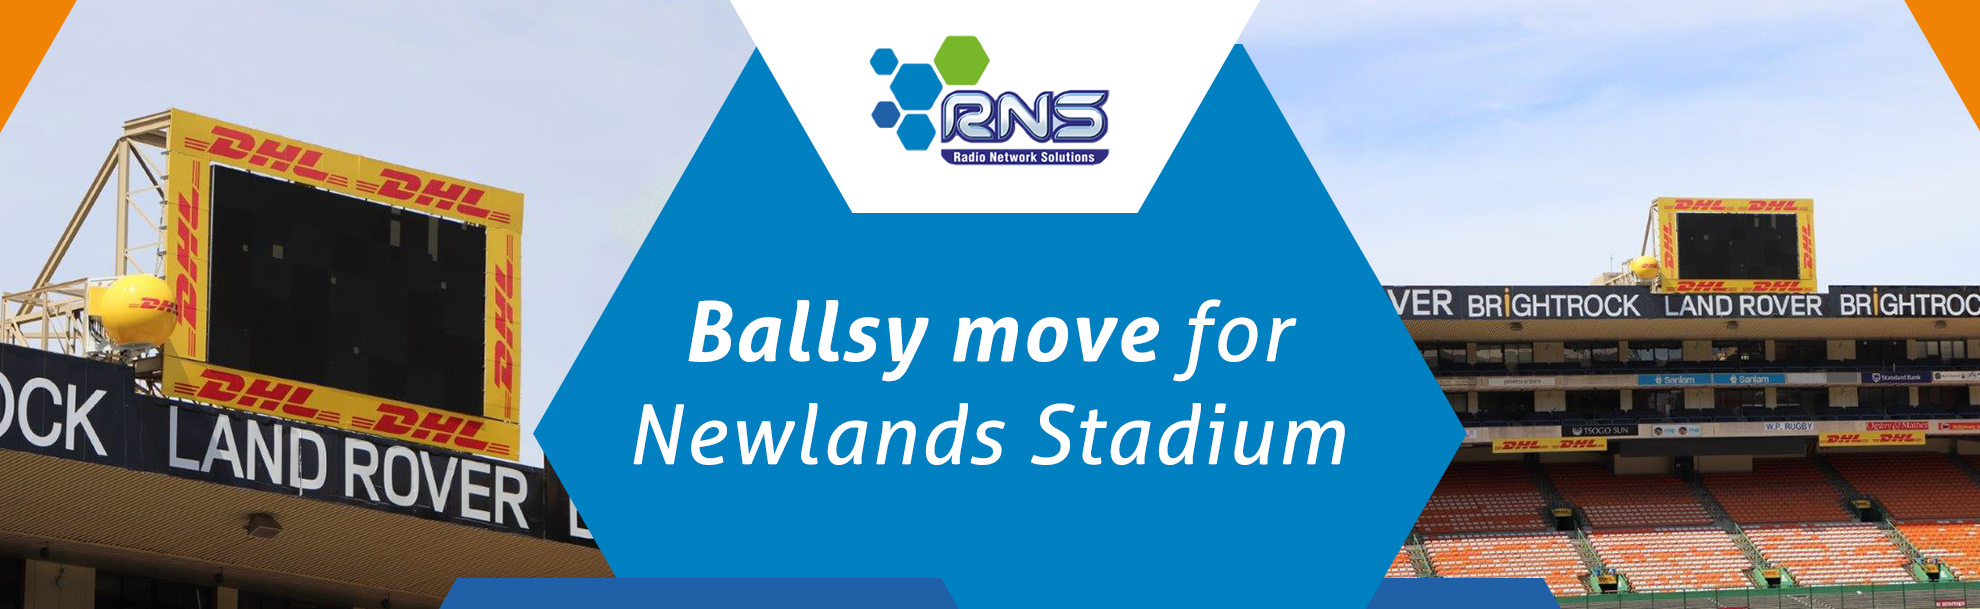 Ballsy move for Newlands Stadium